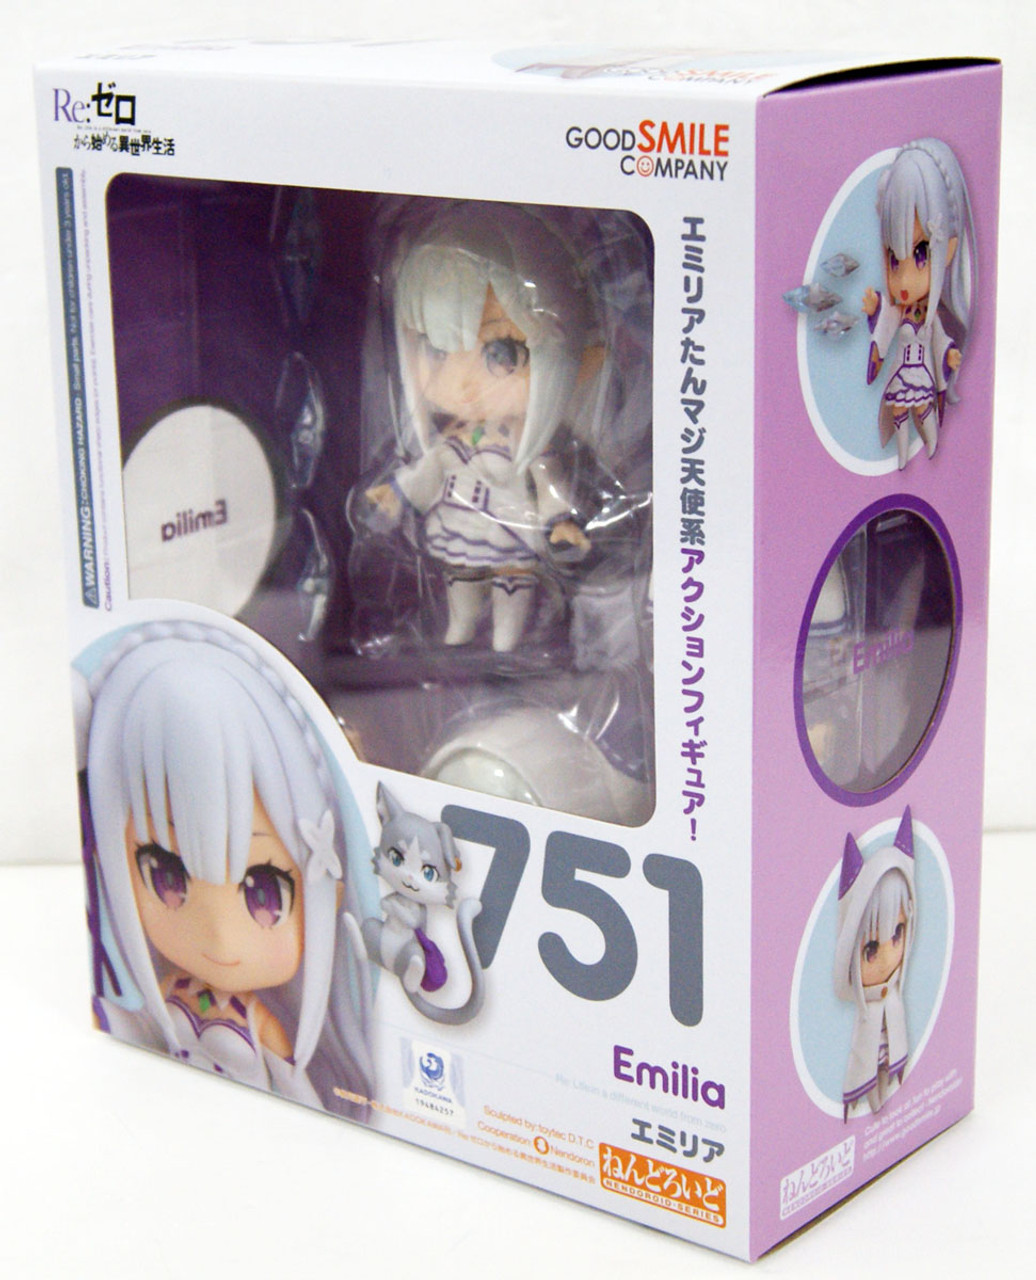 FIGURA EMILIA RE:ZERO NENDOROID 751 FIGURE Re Zero 10 cm with box.